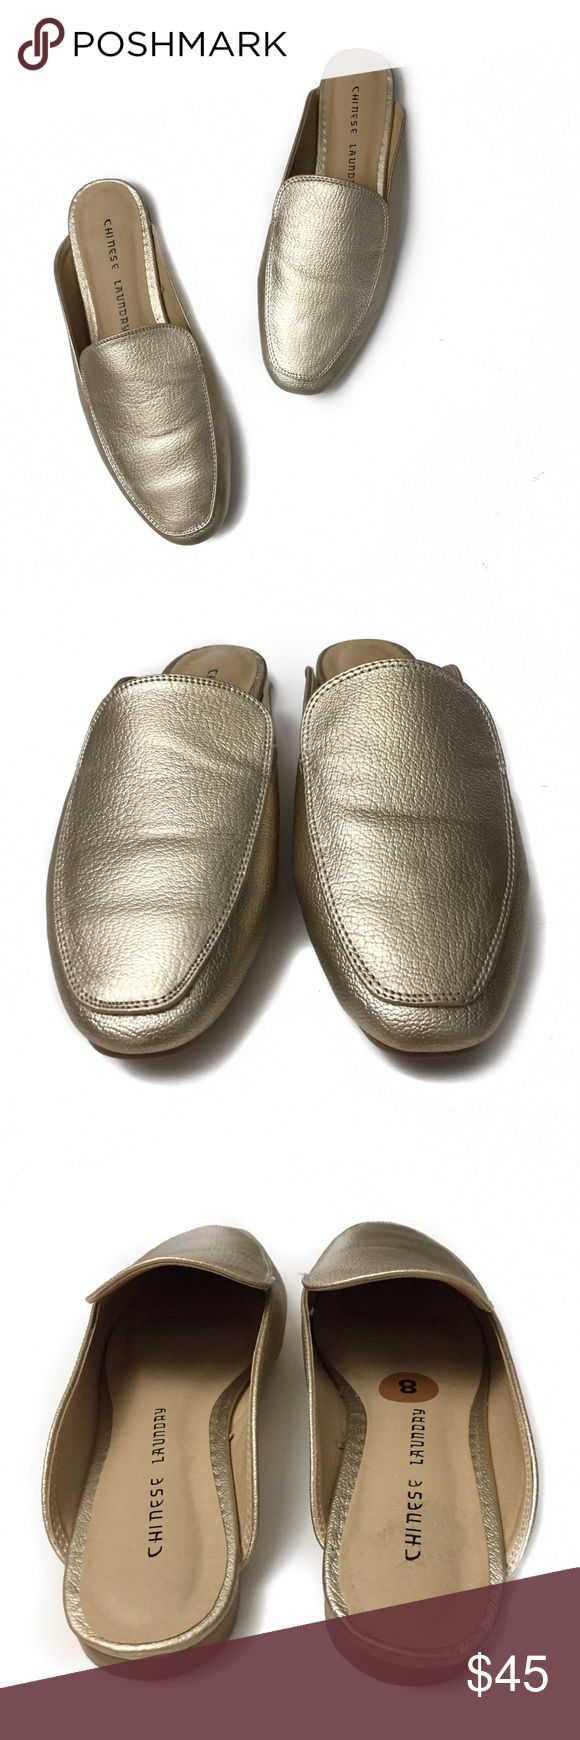 chinese laundry • gold mules in excellent condition | only worn once.   material is man made | color is gold. Chinese Laundry Shoes Mules & Clogs #Mules&Clogs